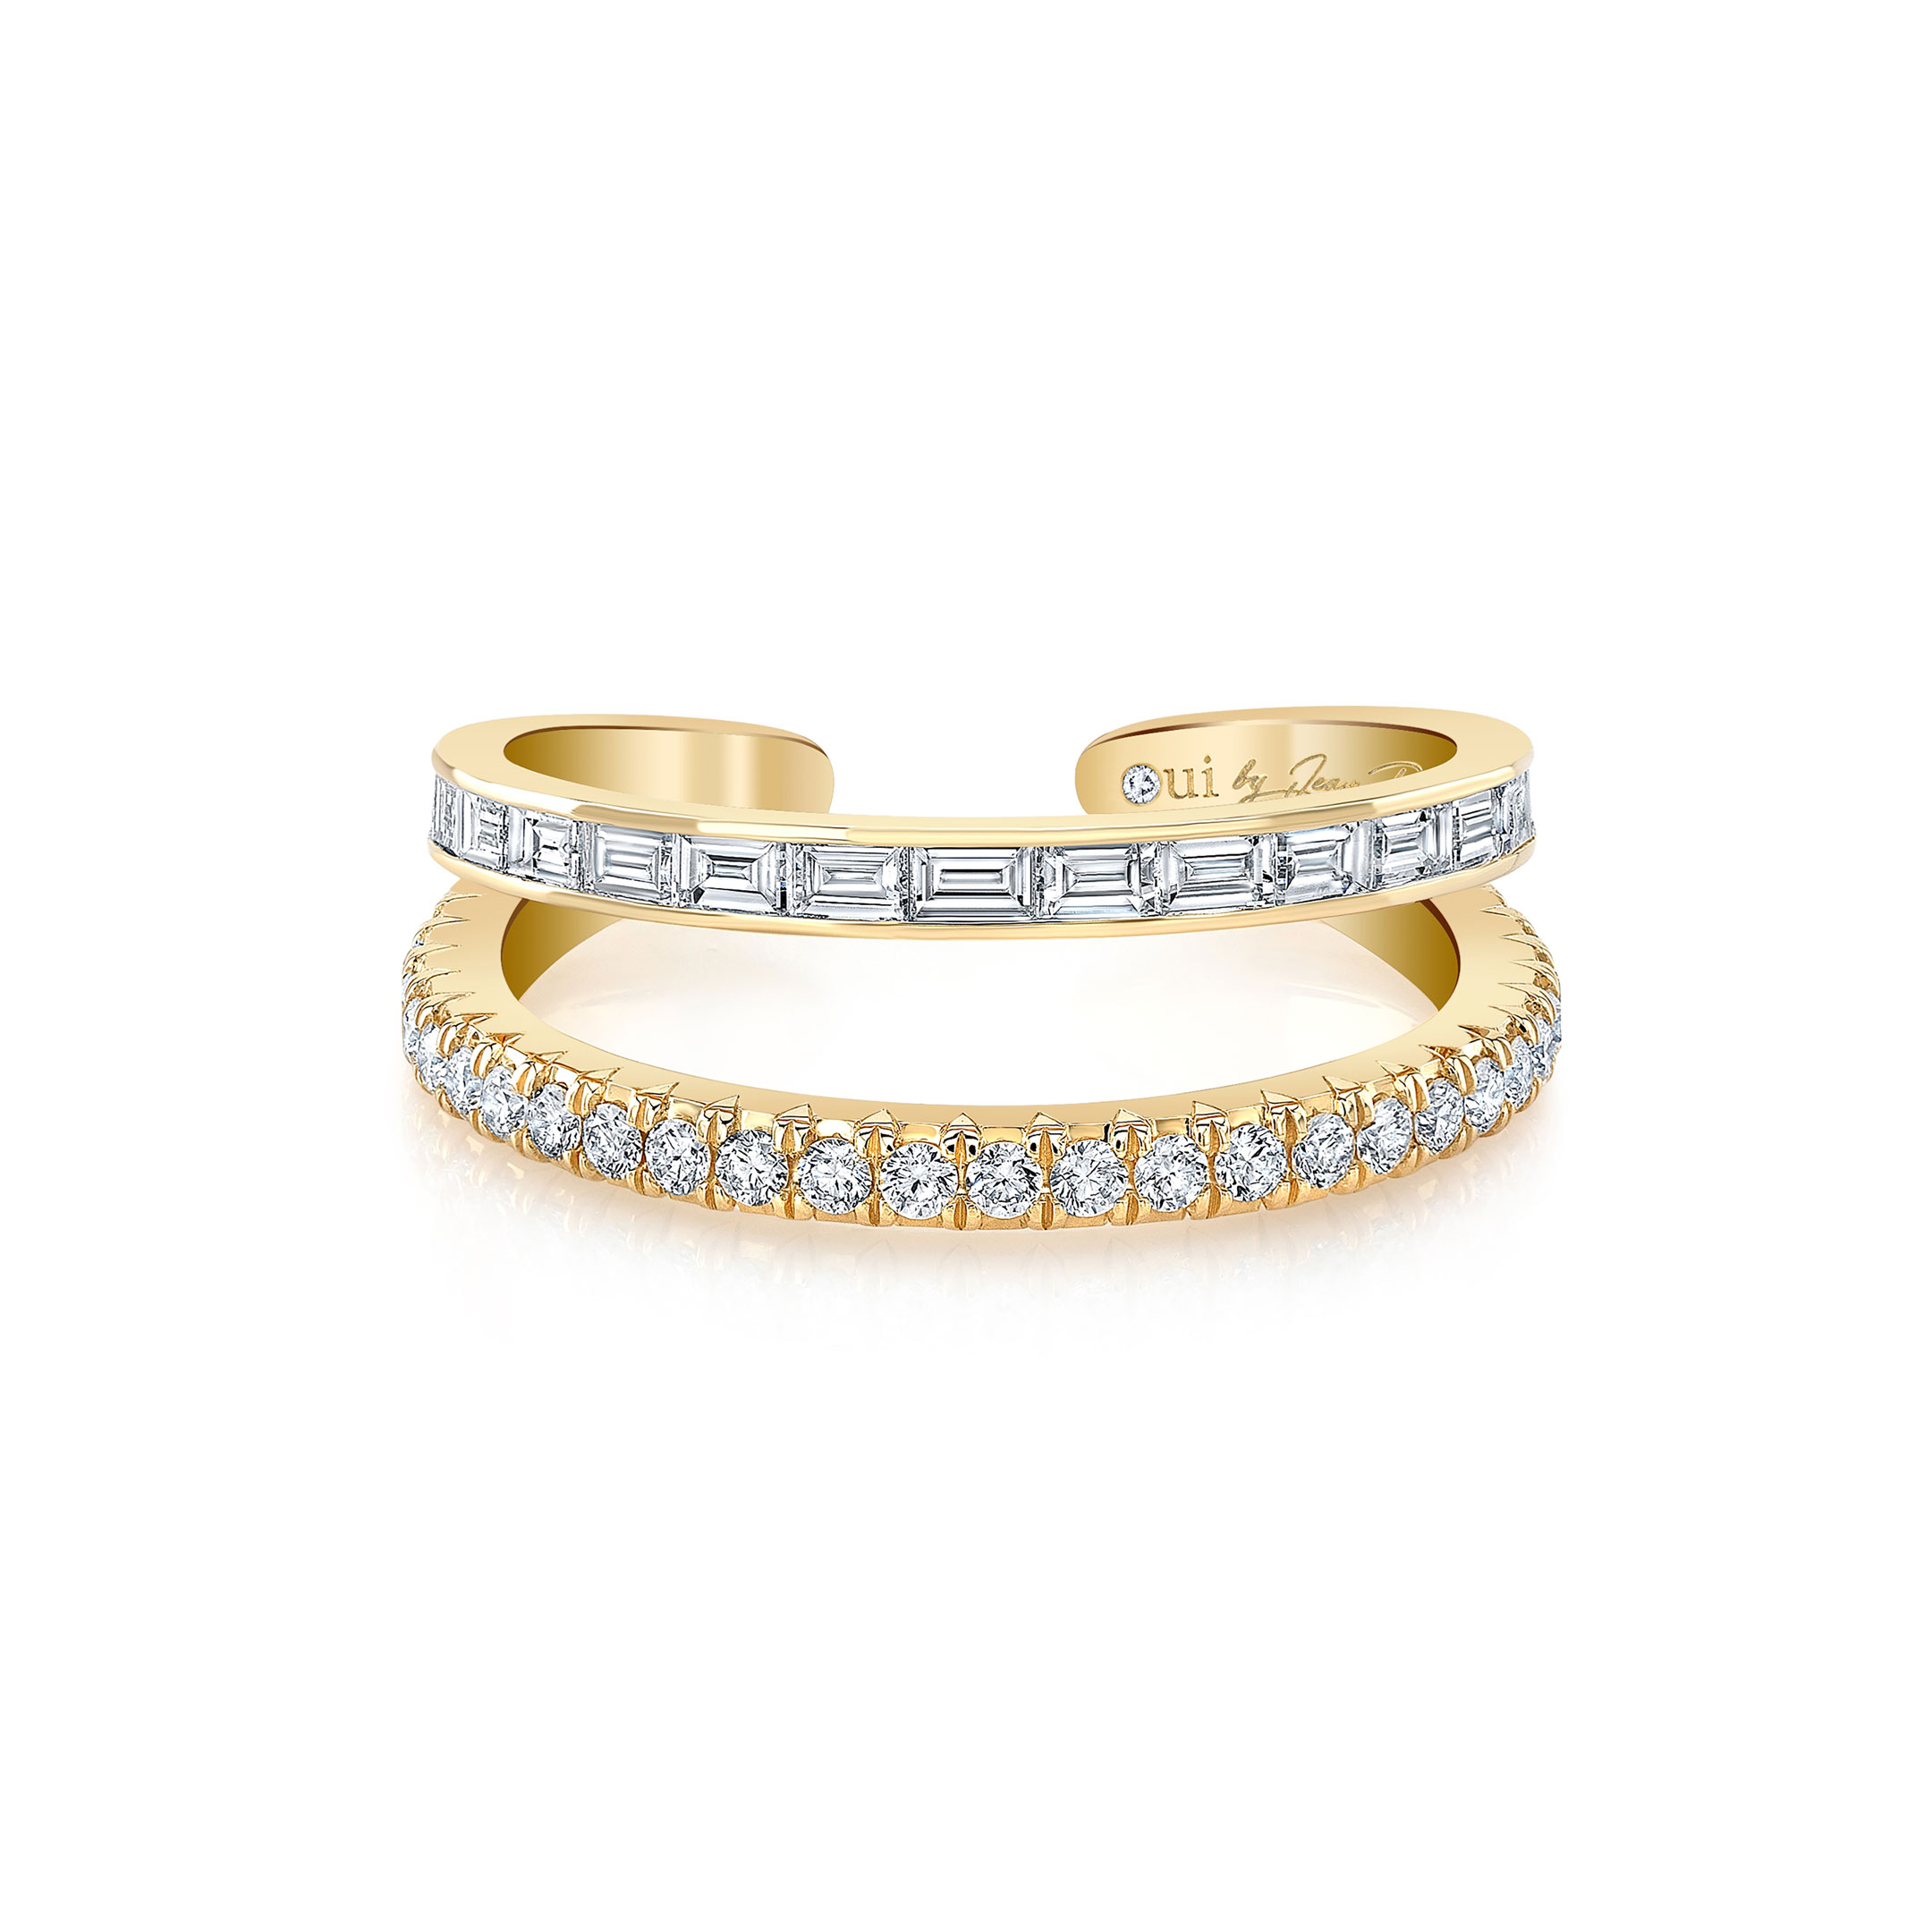 Baguette and Diamond Pavé Double Band Ring in 18k Yellow Gold Front View by Oui by Jean Dousset